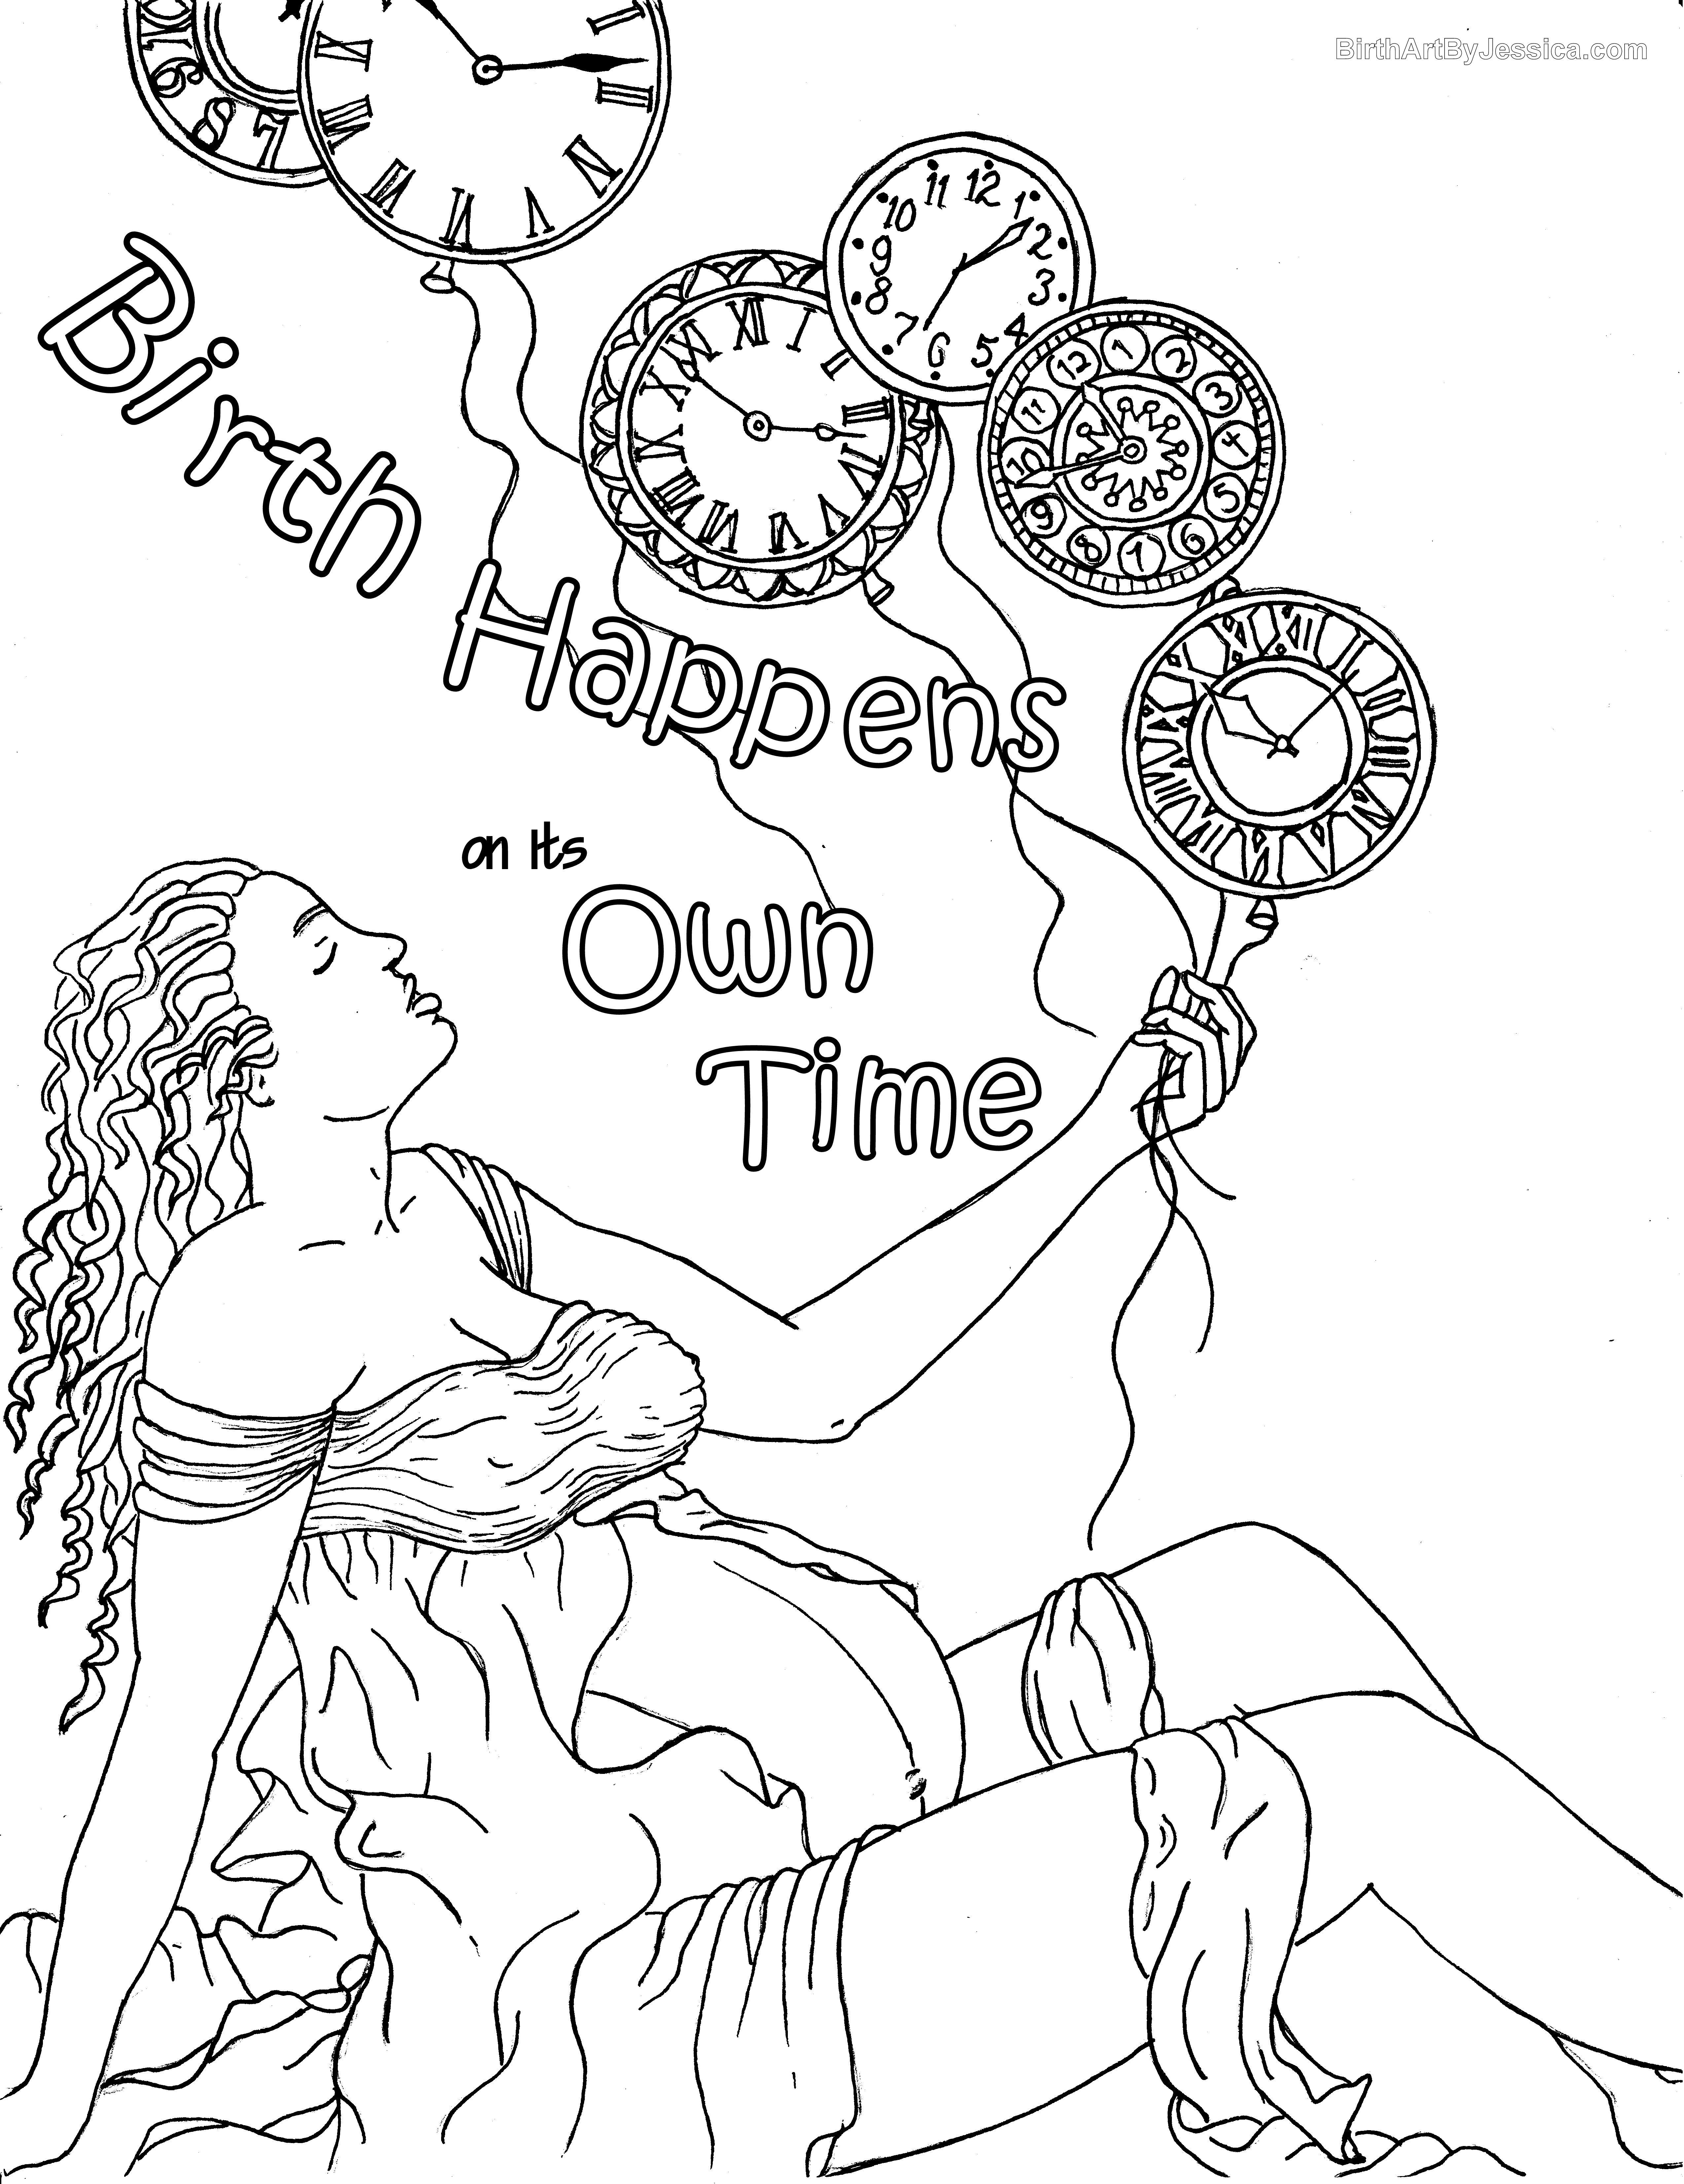 Birth Affirmation Coloring Page Free Printable Birth Affirmations Birth Art Coloring Books